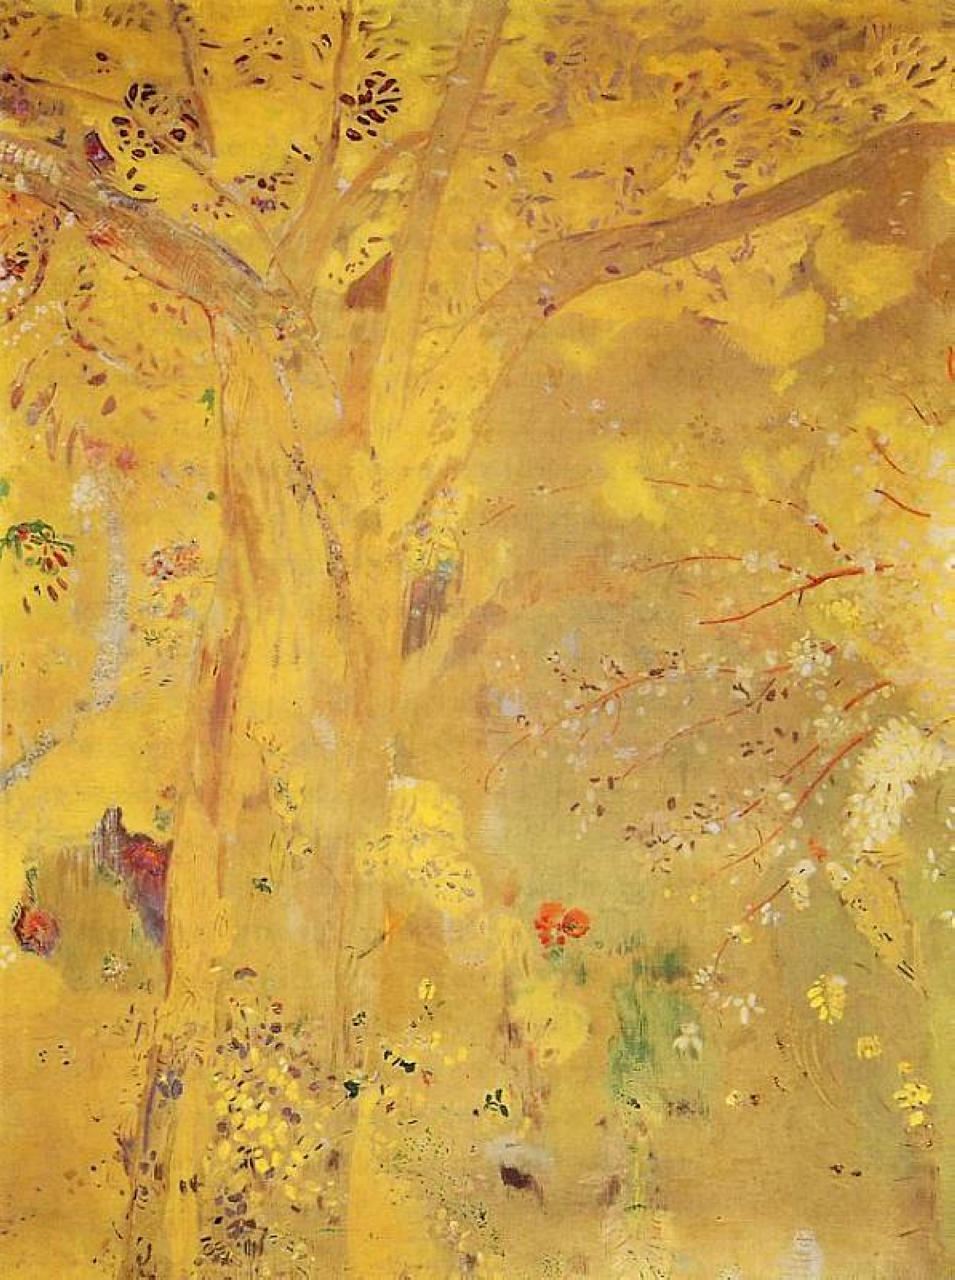 tree-against-a-yellow-background-1901.jpg